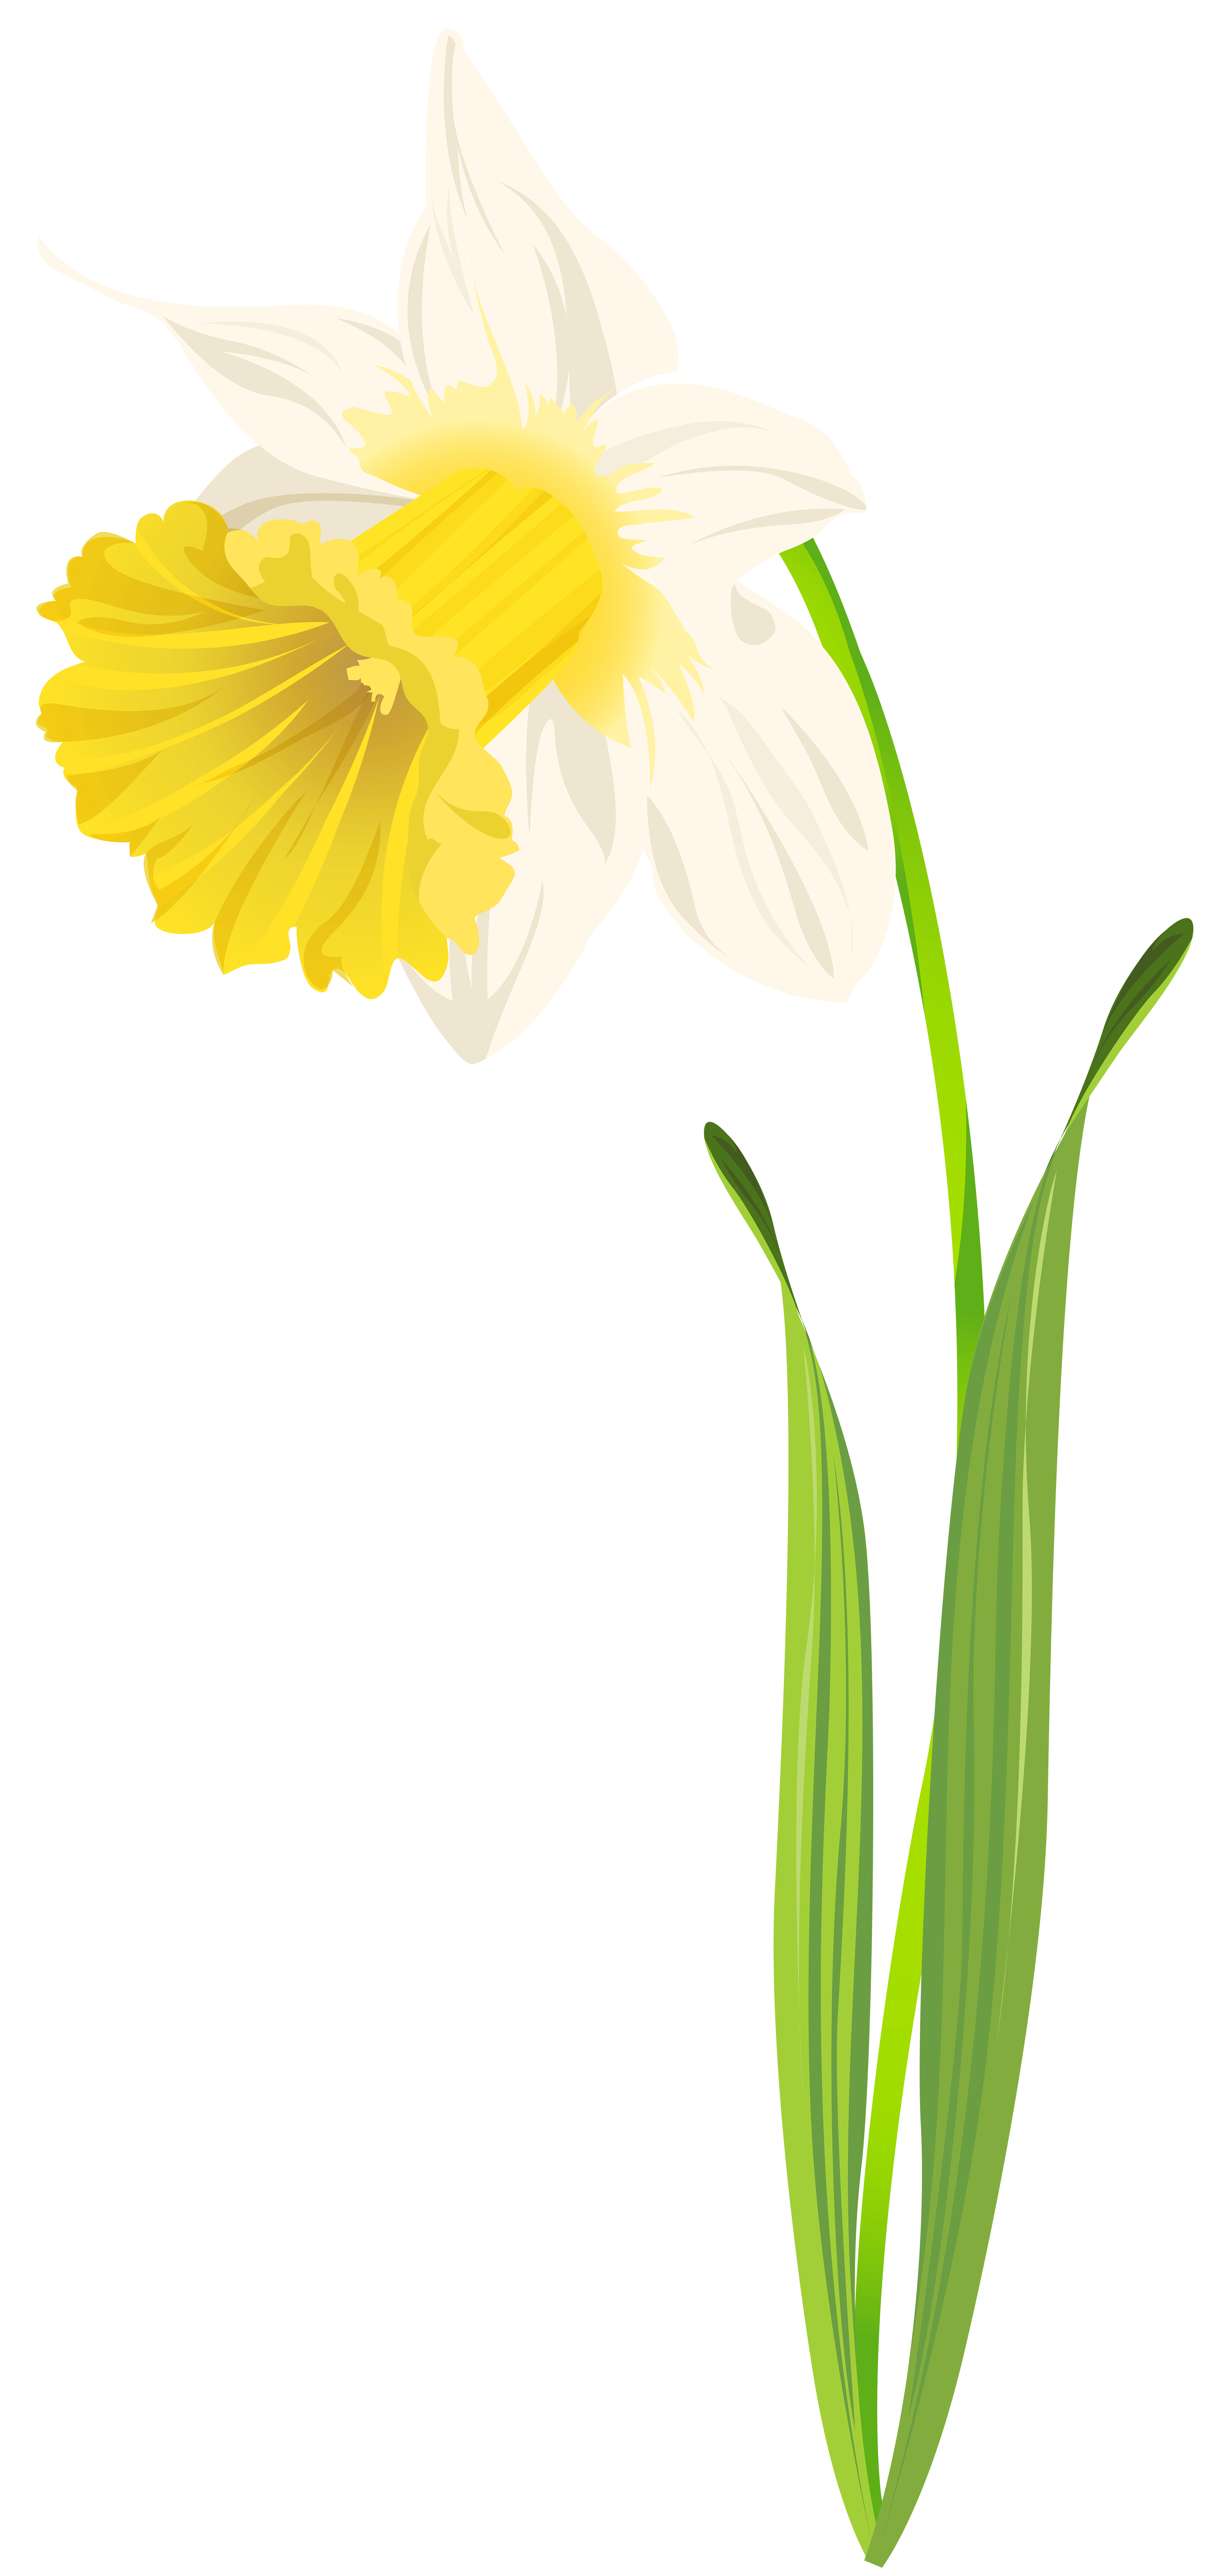 Daffocil clipart clip black and white download Daffodil PNG Clip Art Image - Best WEB Clipart clip black and white download